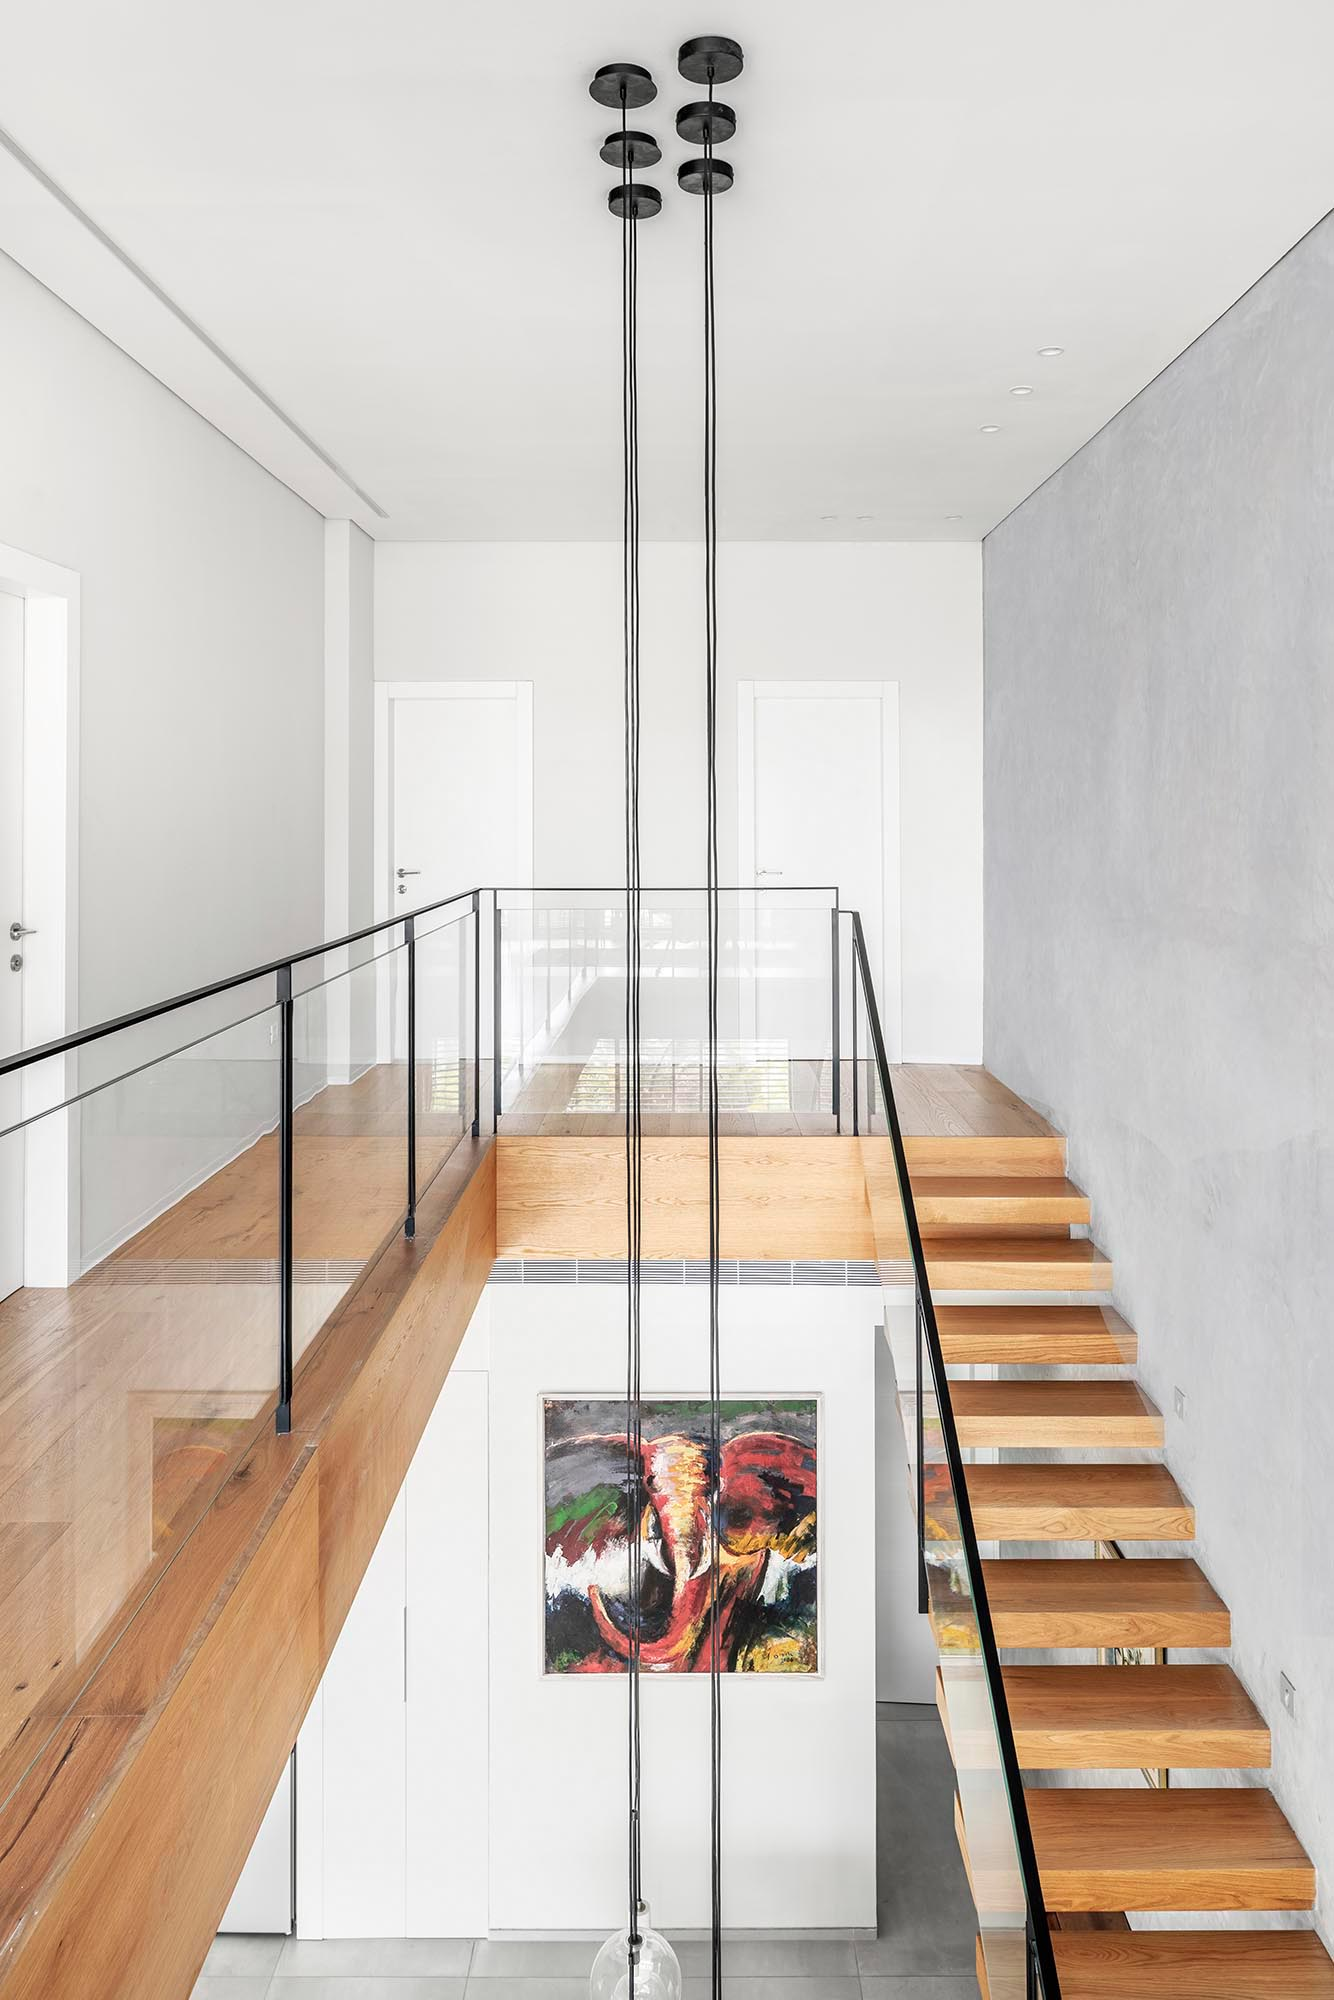 The top of this wood staircase opens to a walkway that leads to a small sitting room. The railing, composed of iron and glass, completes the clean and minimalist look.